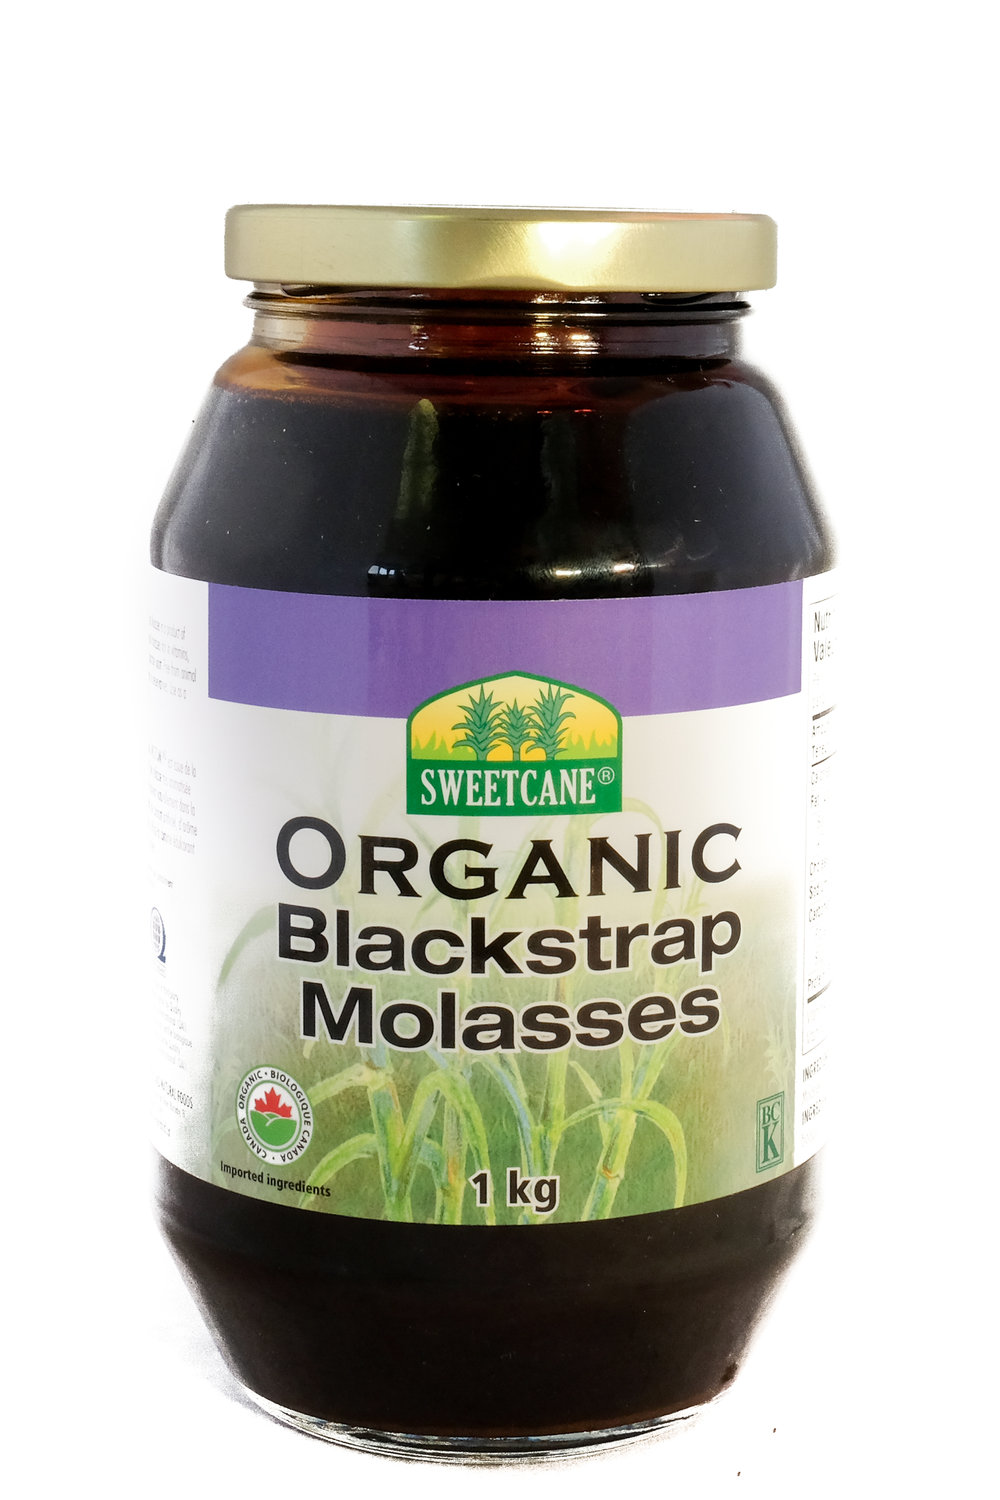 Organic Blackstrap Molasses